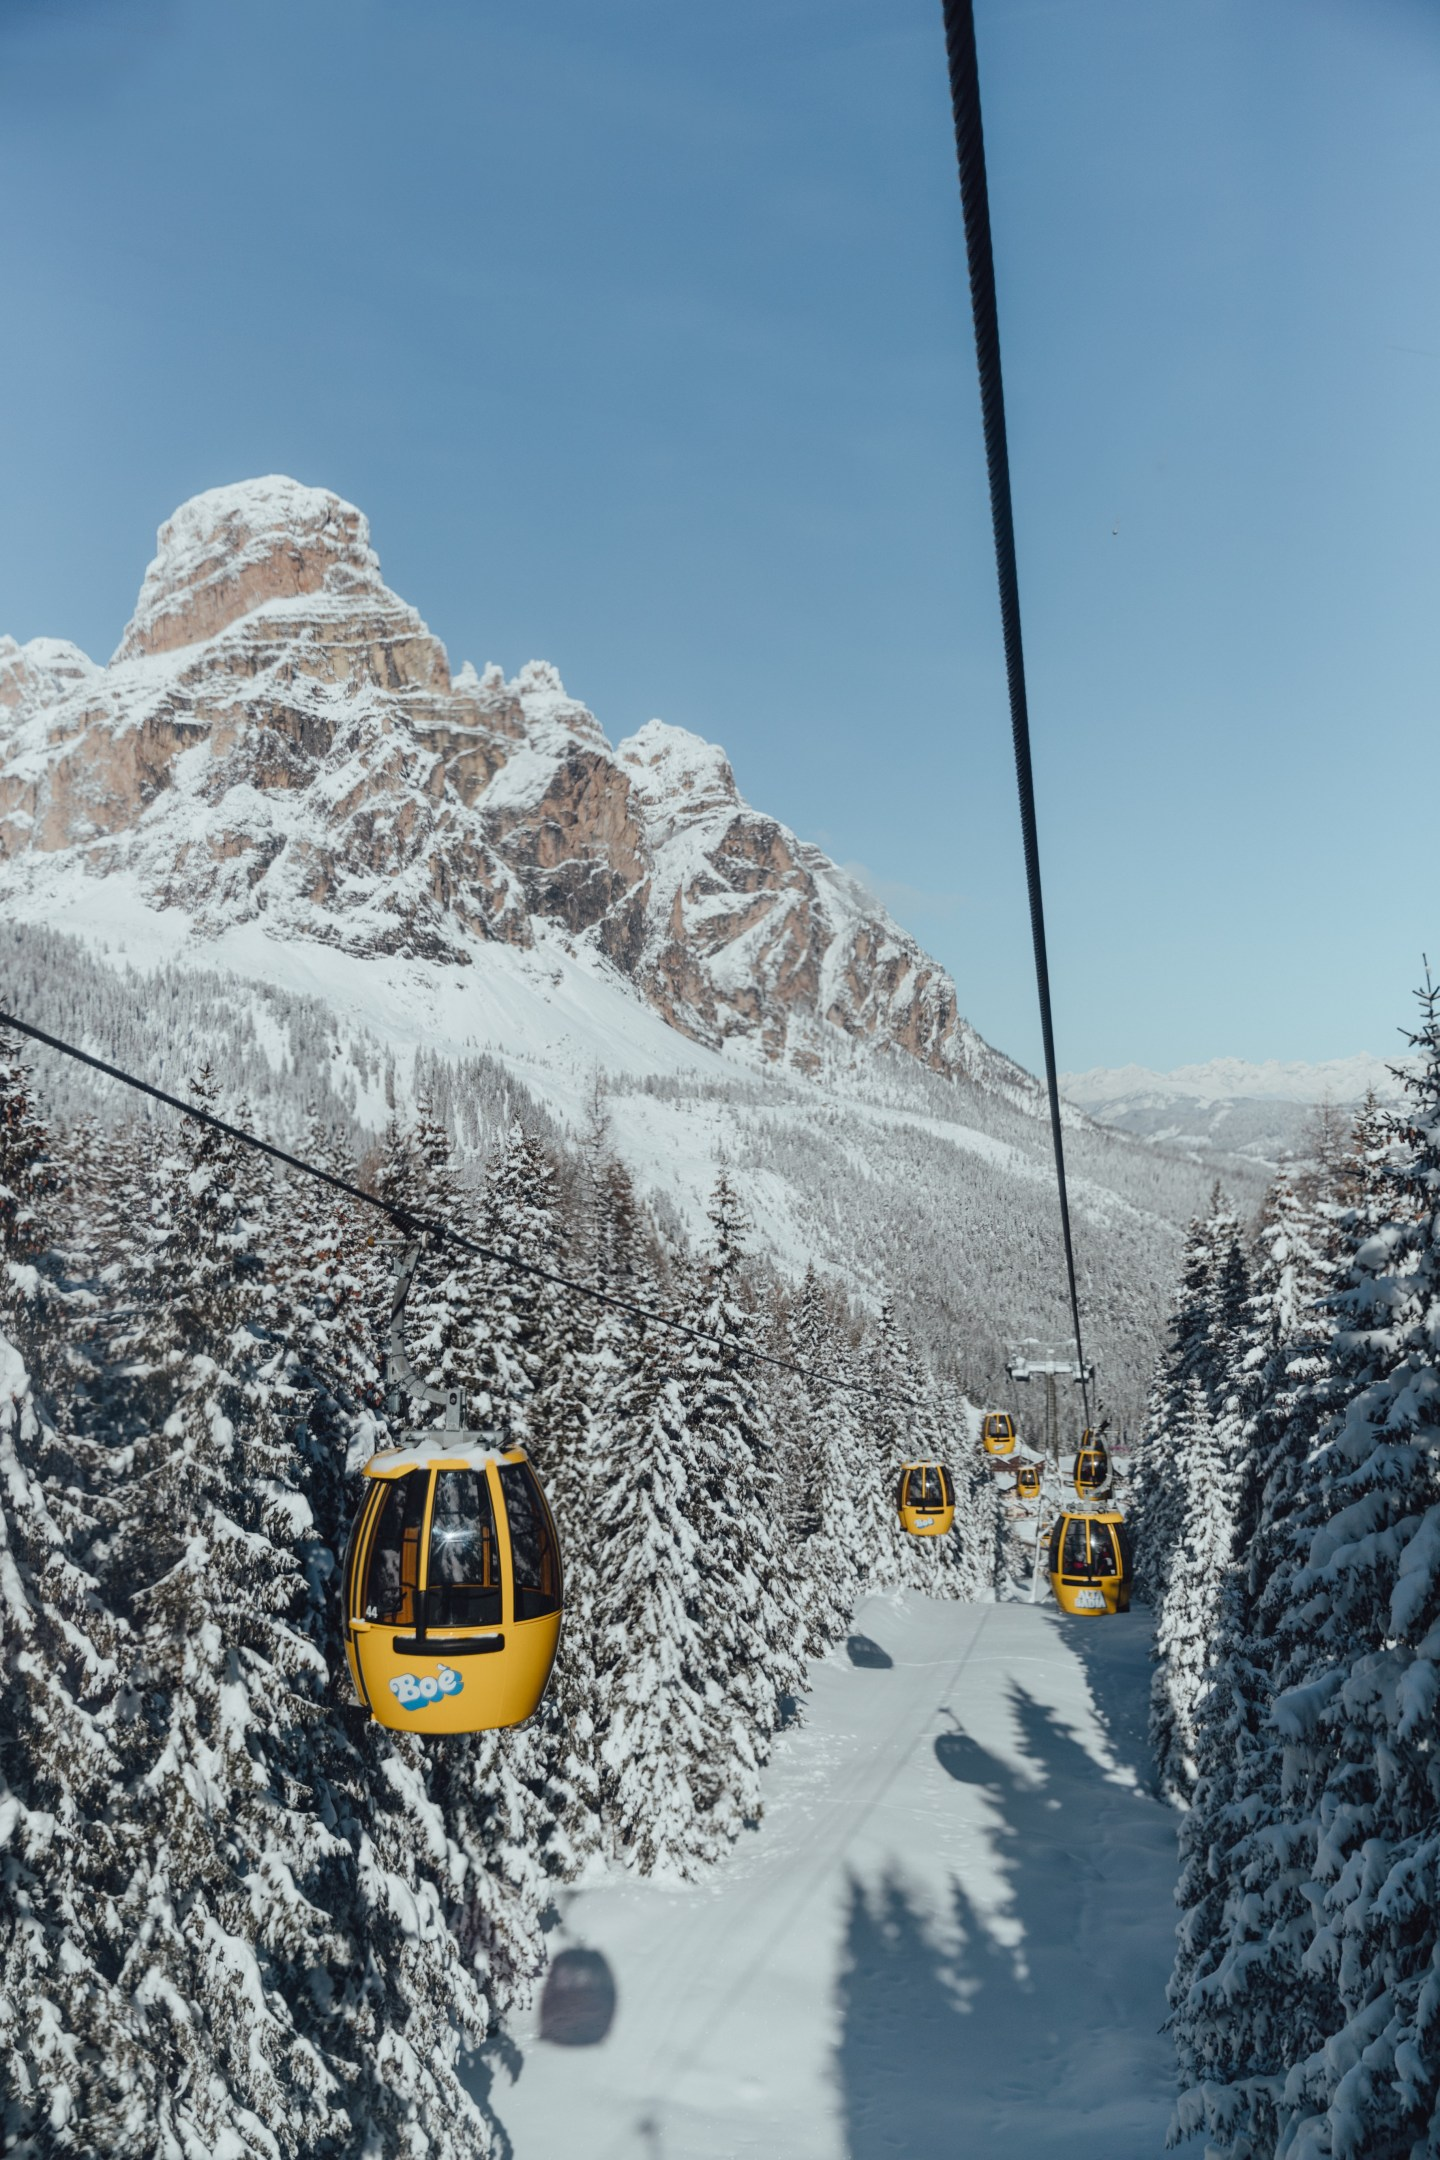 Weekend Winter Getaway In The Dolomites - Allie M. Taylor